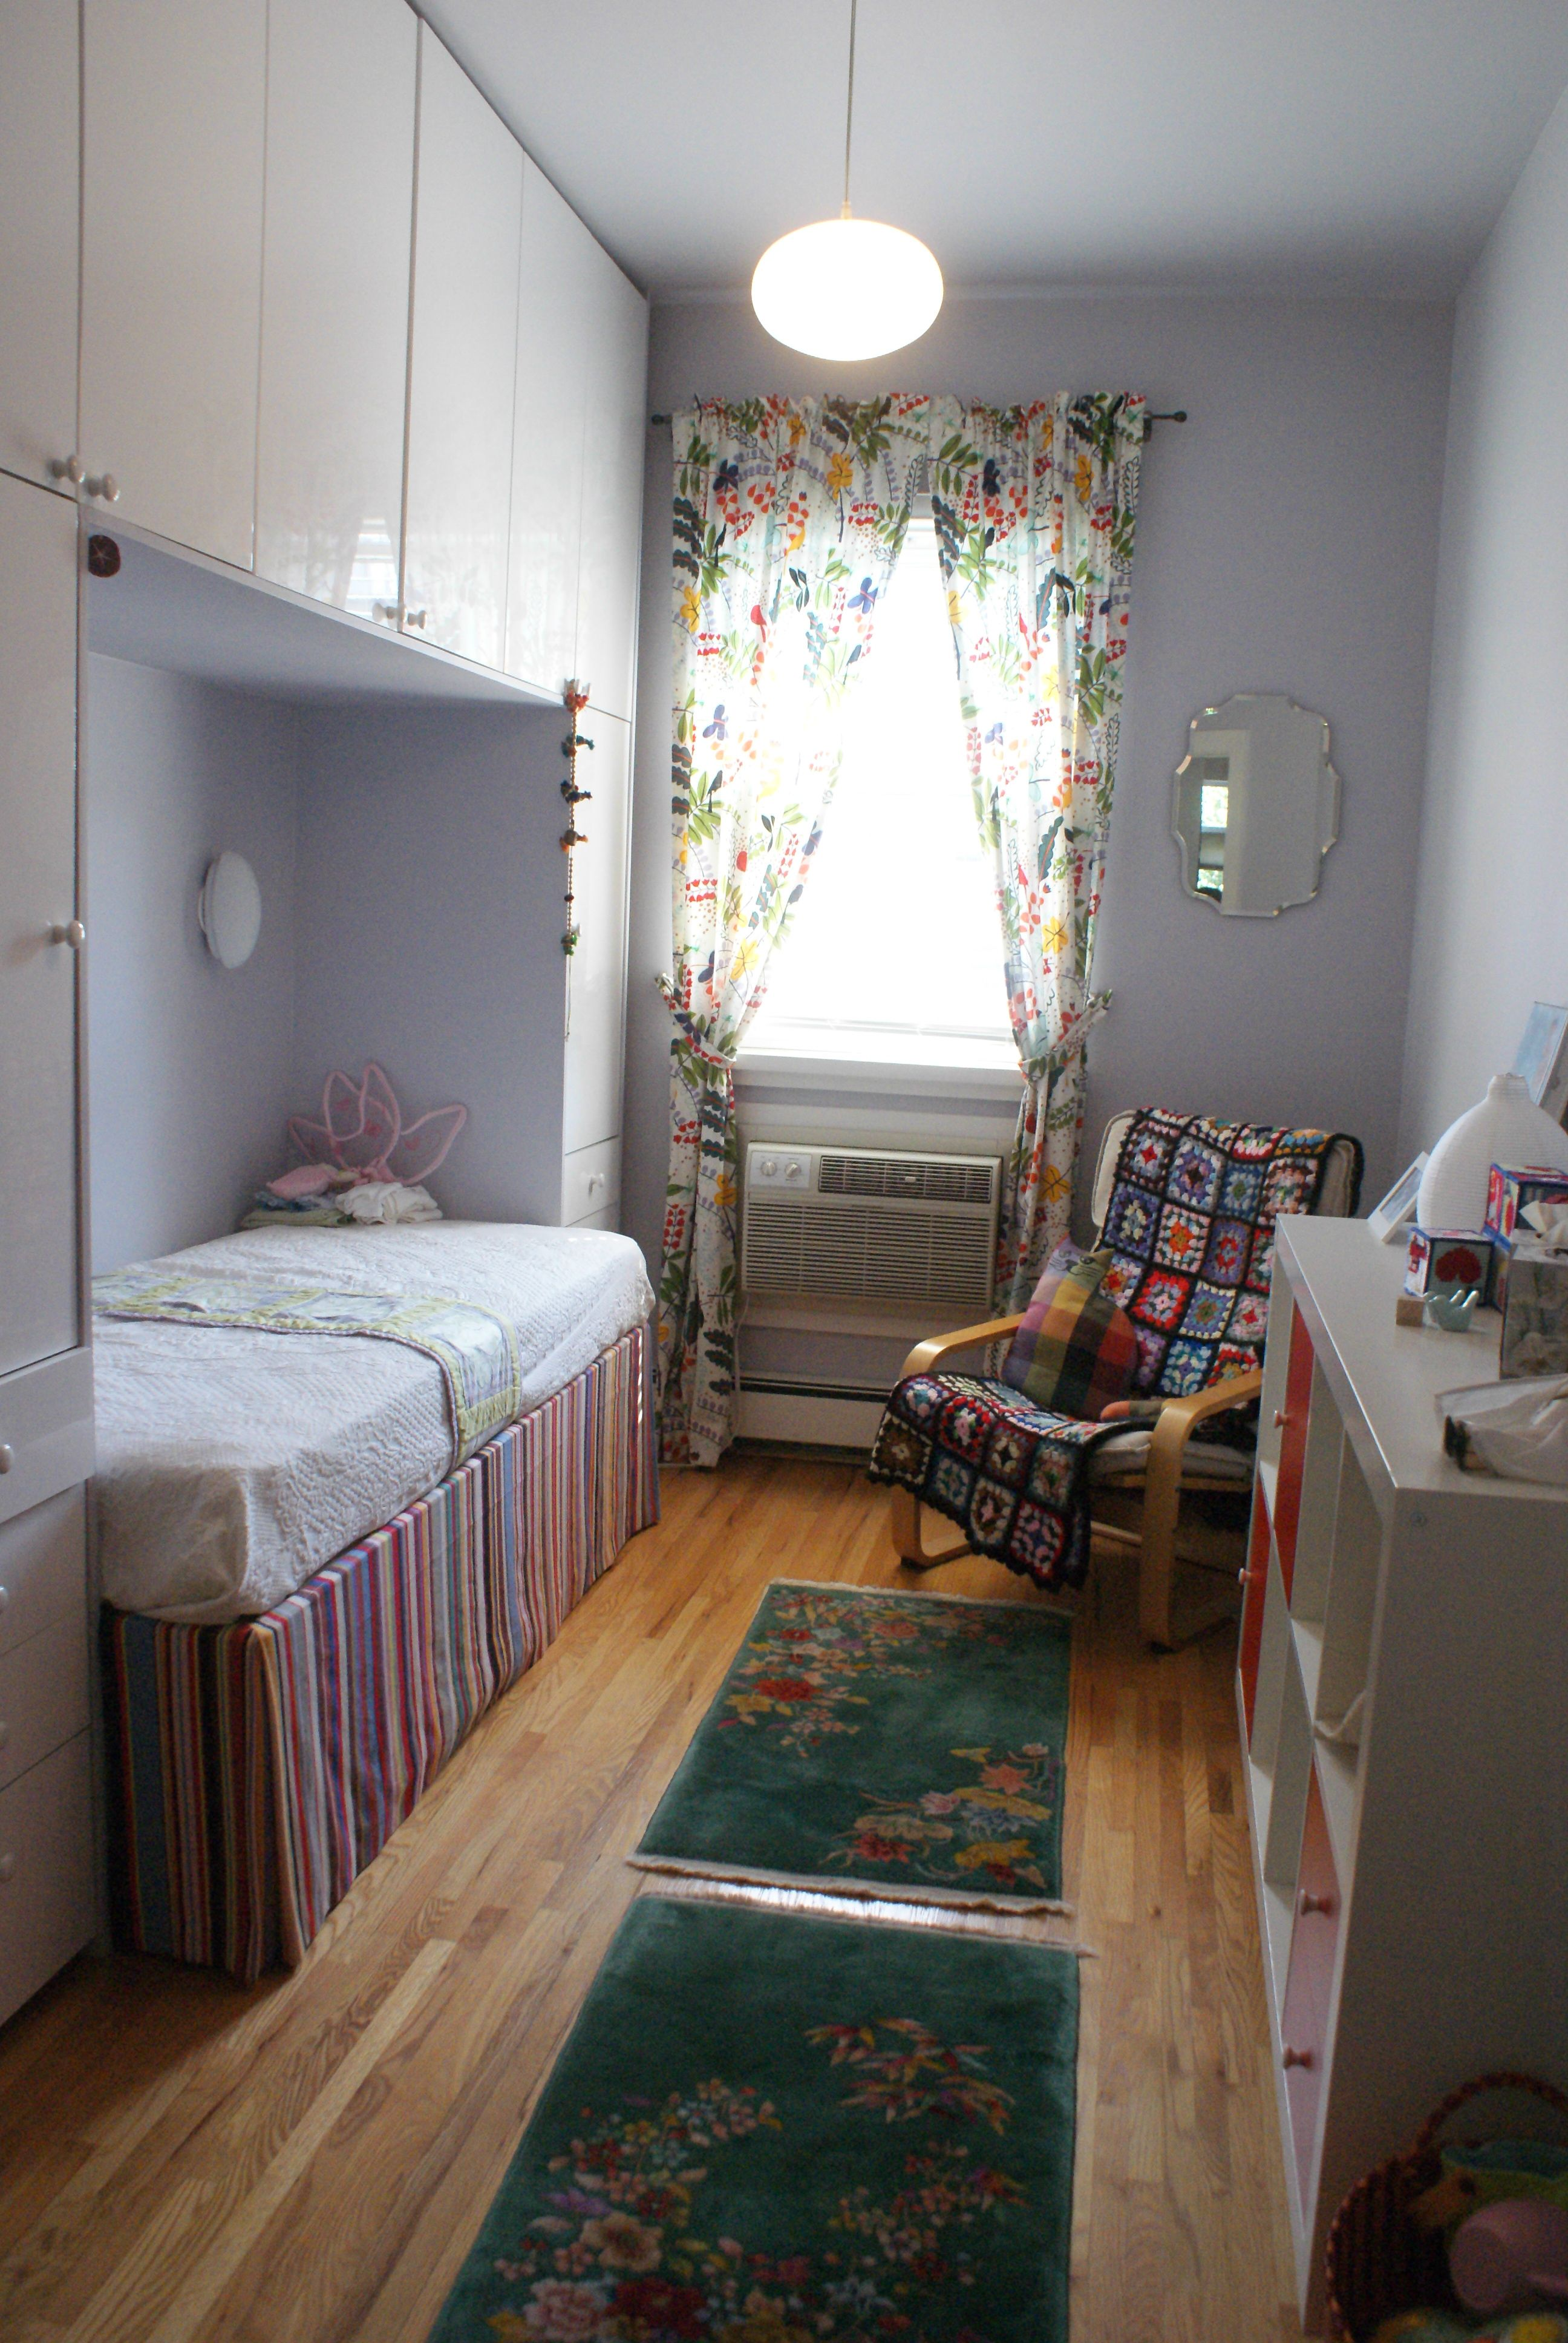 17 Best images about cozy kids room on Pinterest   Bohemian bedrooms  Loft  beds and Lofted beds. 17 Best images about cozy kids room on Pinterest   Bohemian